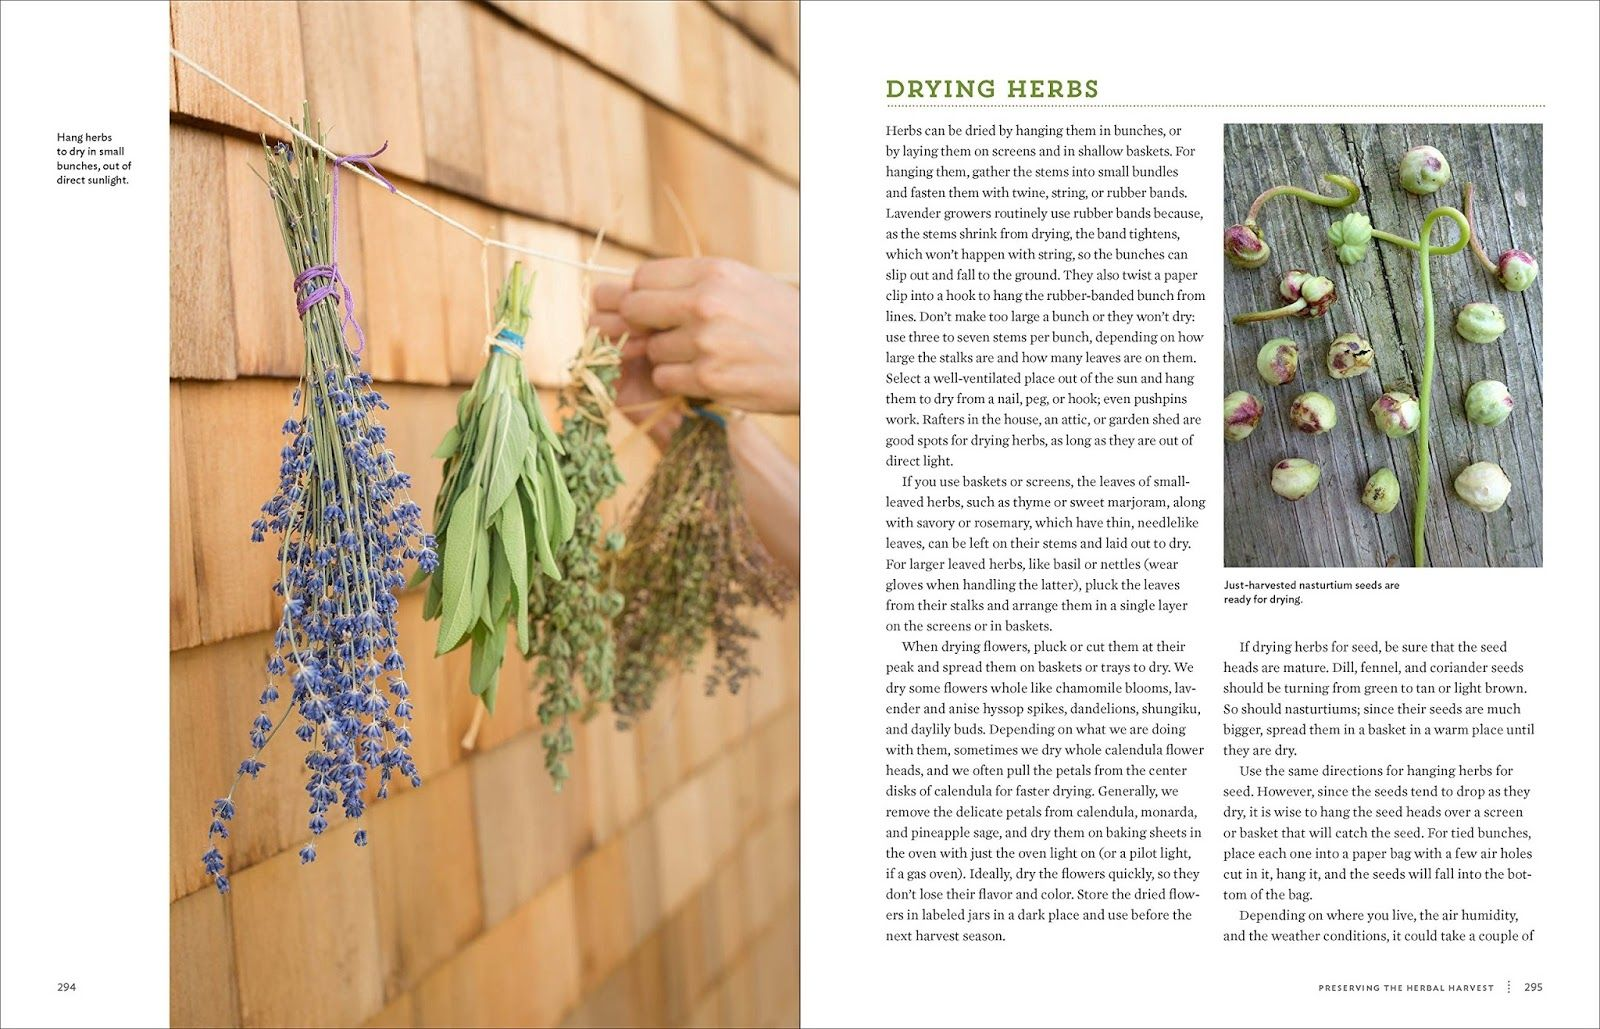 Start your indoor culinary herb garden - T I A Z Z A